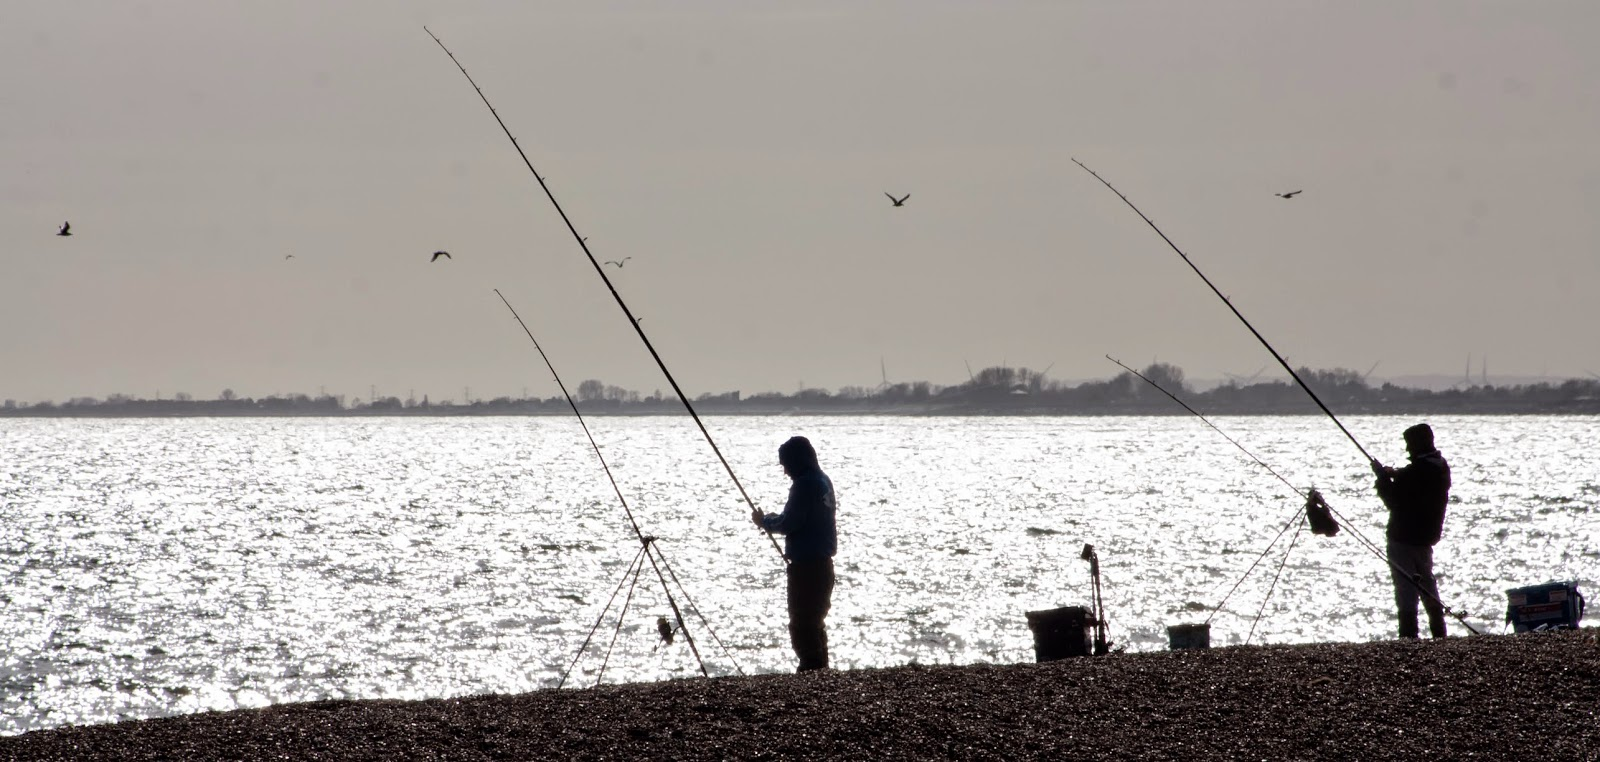 Fishing - Hythe, 27/03/15